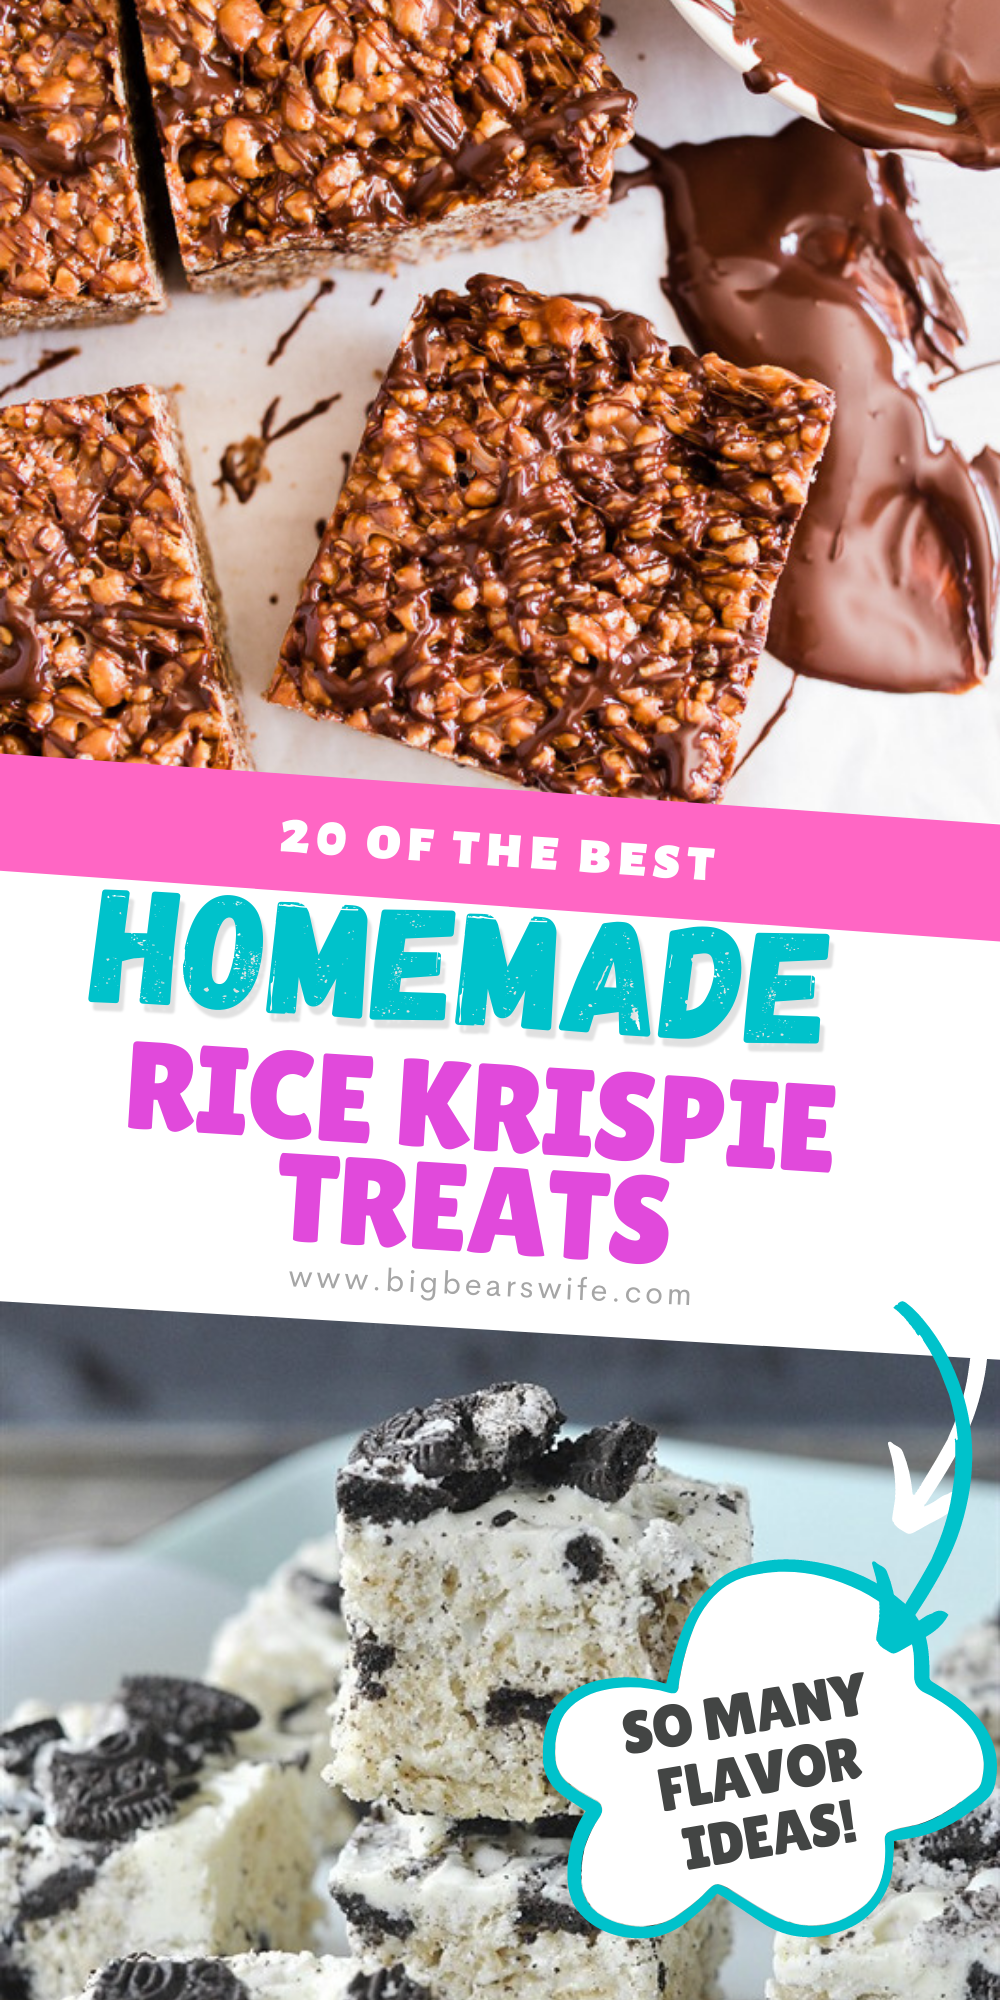 Cereal, Melted Marshmallows and Butter pressed into a perfect little treat! What could be better than a homemade rice krispie treat? If you love rice kripsie treats, I can't wait for you to see these20 Sweet Rice Krispie Treats recipes! via @bigbearswife